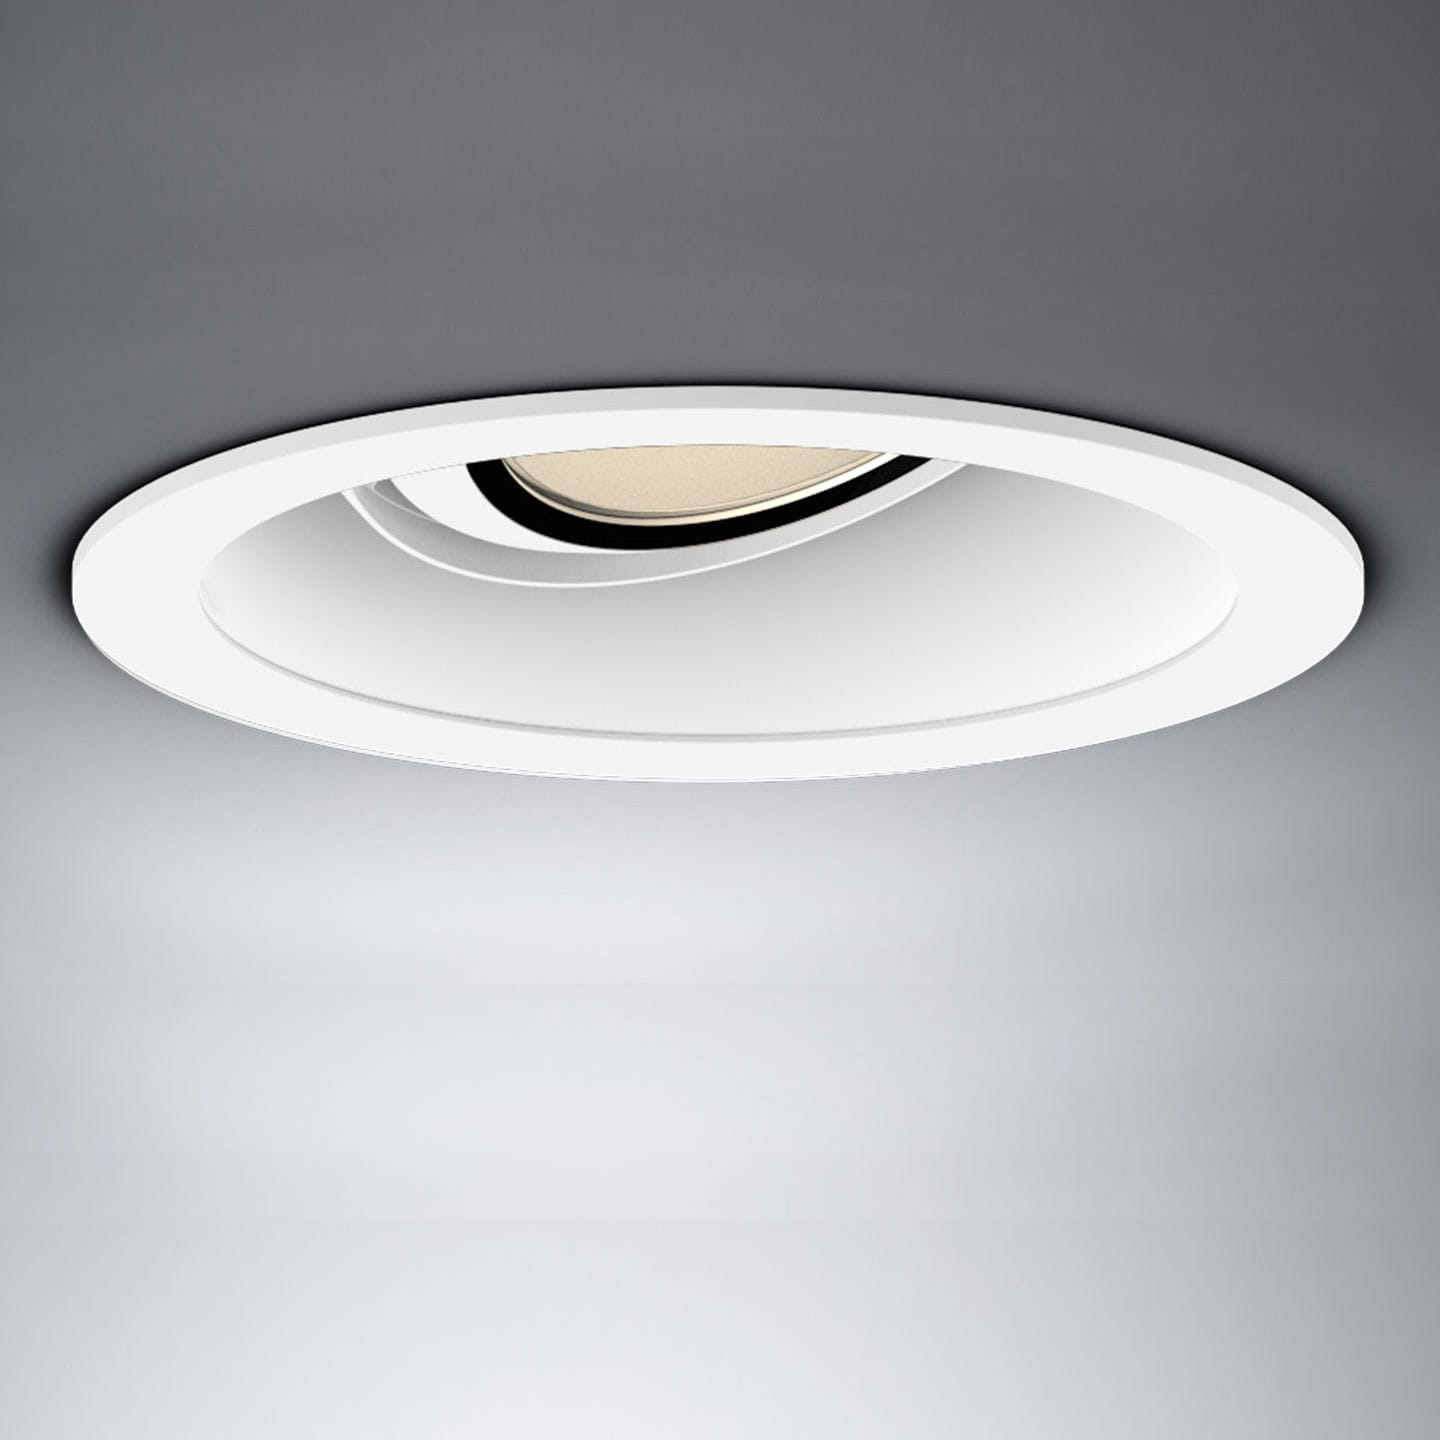 Piano Indoor Recessed Più Round Led Ceiling In M0nn8wv Spotlight R BeWCrdox